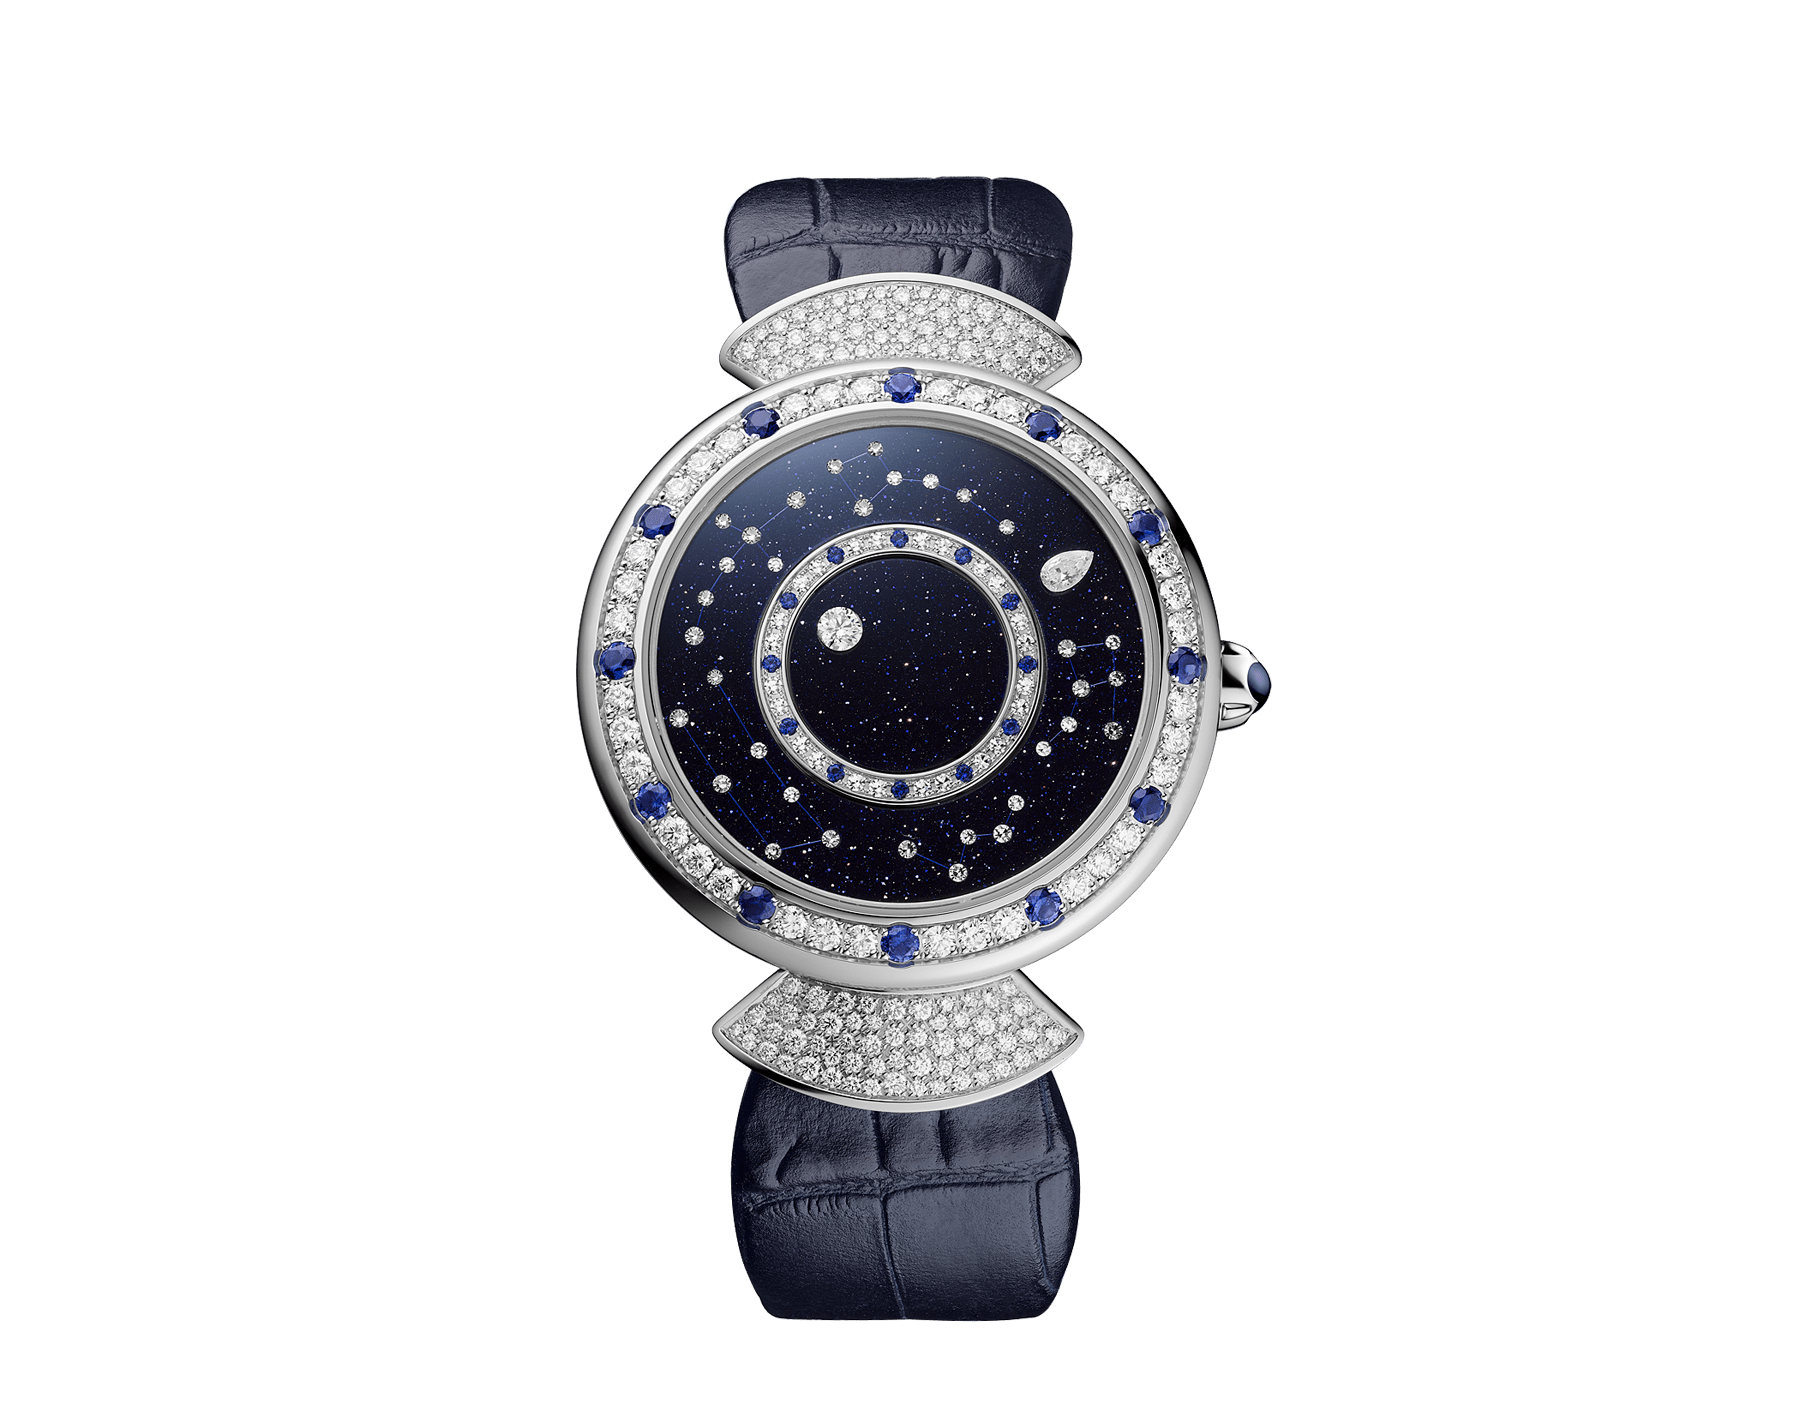 DIVAS' DREAM watch with mechanical manufacture movement, automatic winding, 18 kt white gold case set with round brilliant-cut diamonds and sapphires, aventurine rotating discs with diamonds and printed constellations and dark blue alligator bracelet 102842 image 1